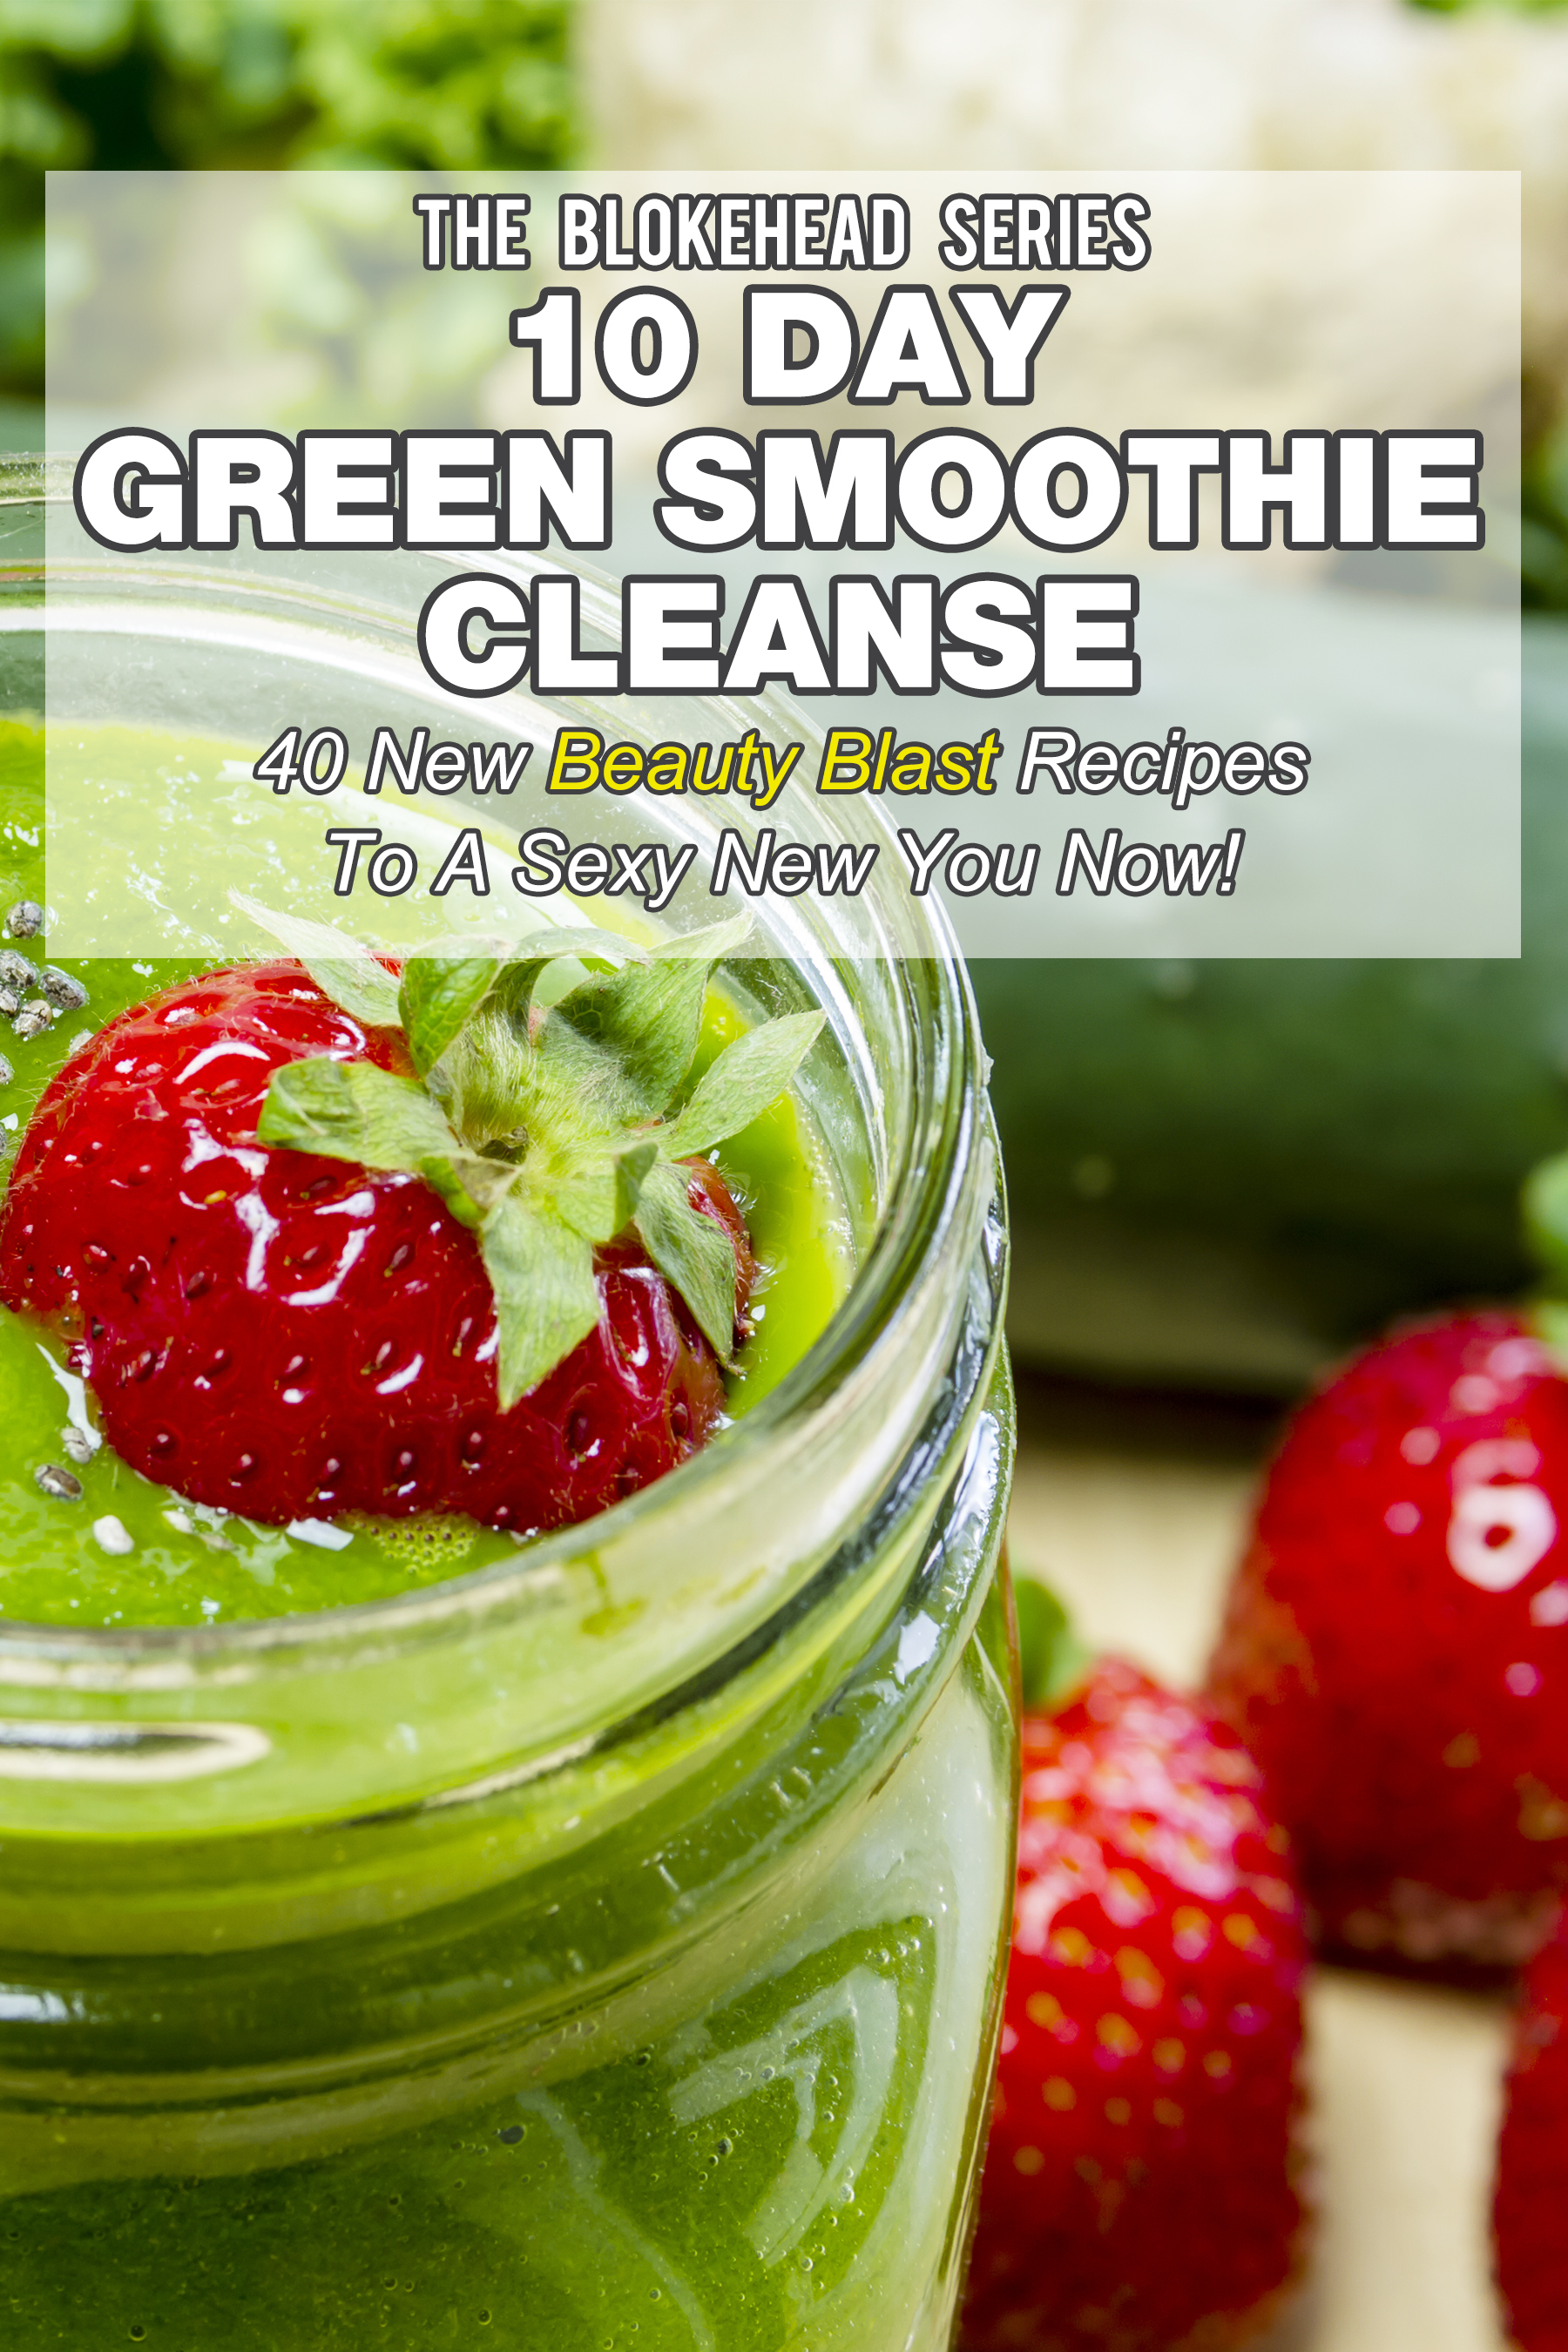 10 day green smoothie cleanse: 50 new beauty blast recipes to a sexy new you now